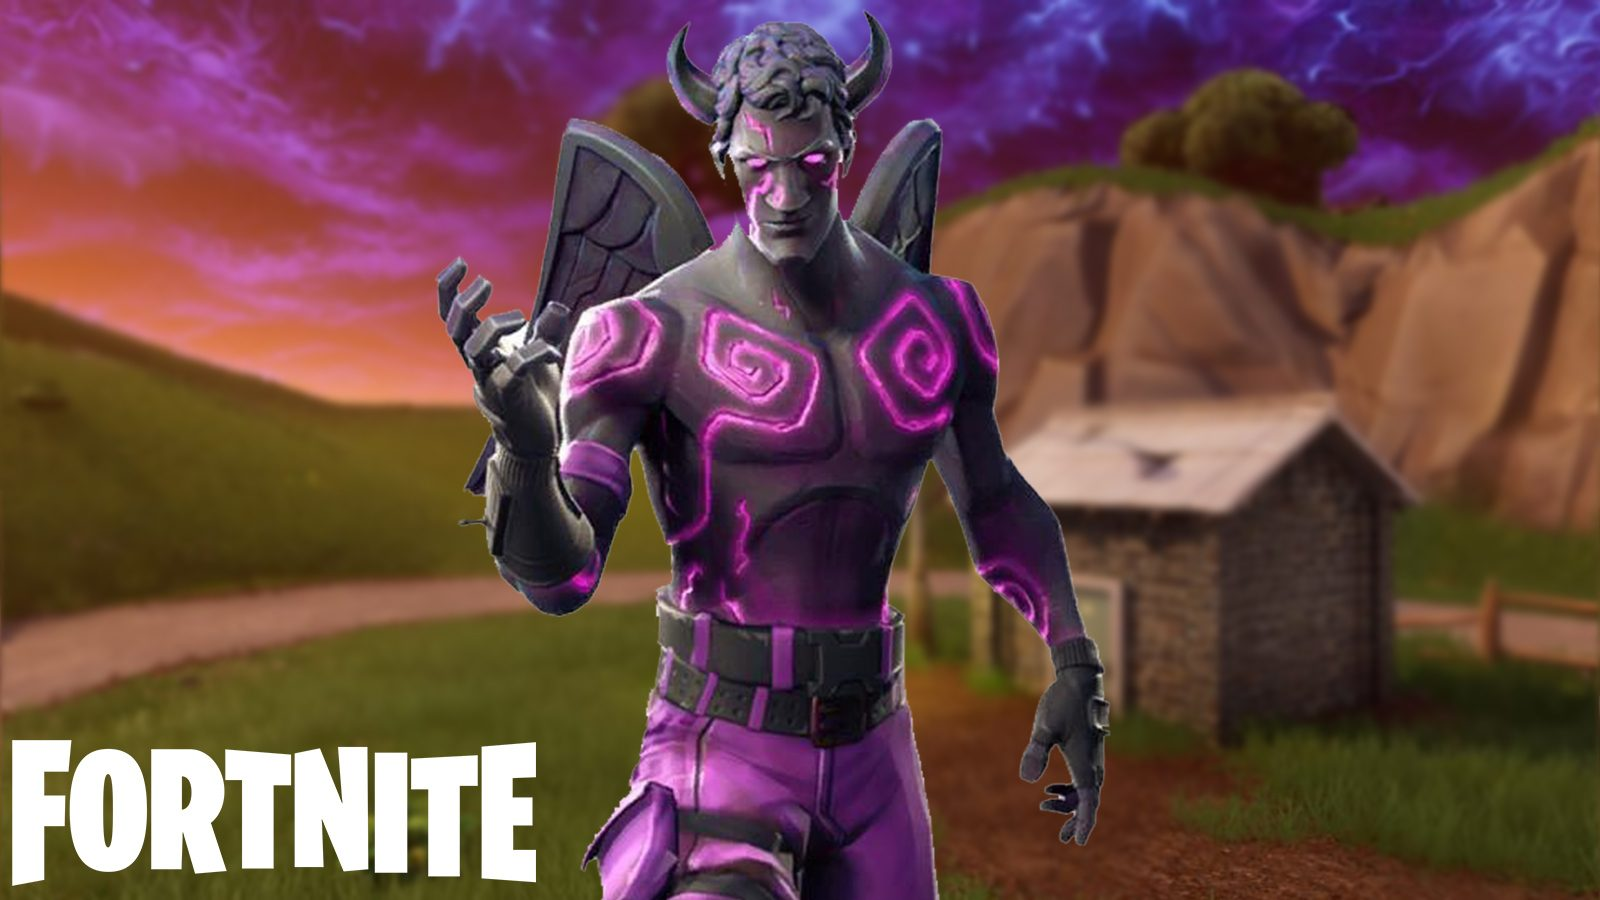 Fortnite Fallen Love Ranger challenges and how to complete them 1600x900